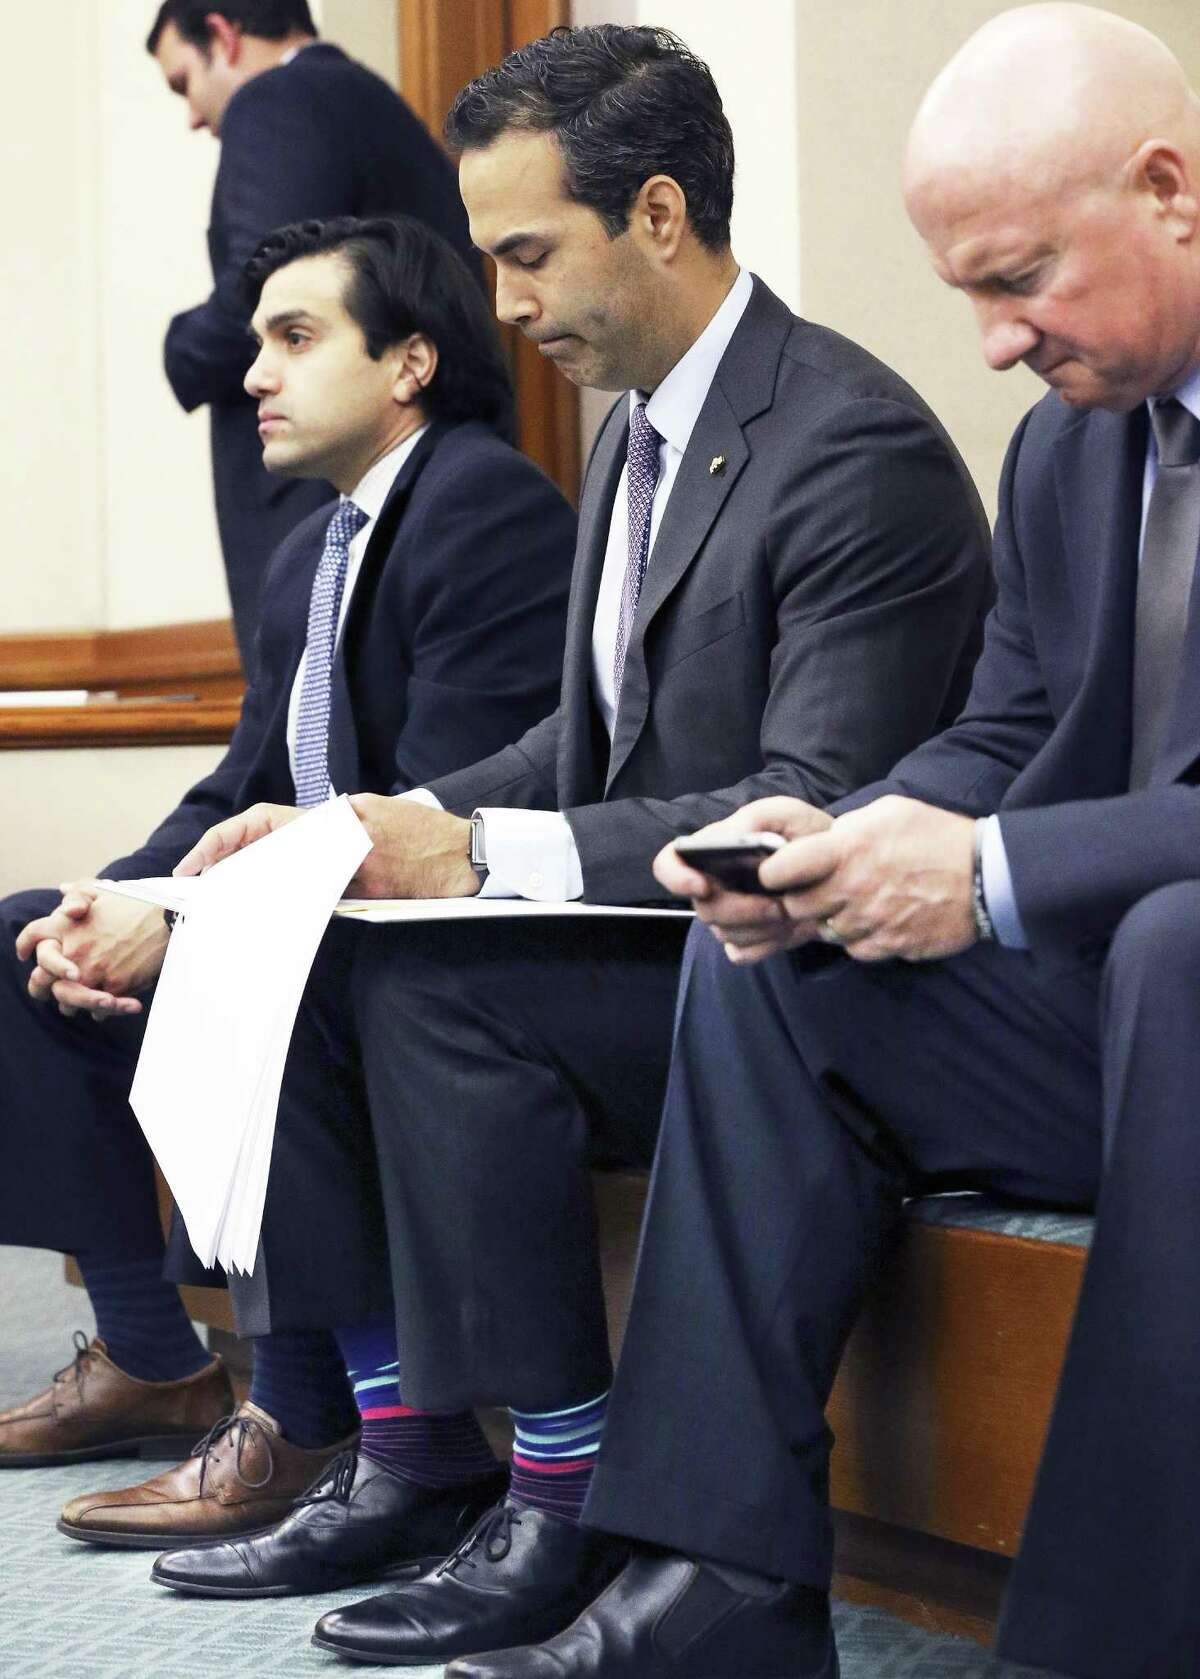 Texas Land Commissioner George P. Bush studies his notes before taking the floor as the Senate Finance Committee hears presentations at the Capitol on February 9, 2017.